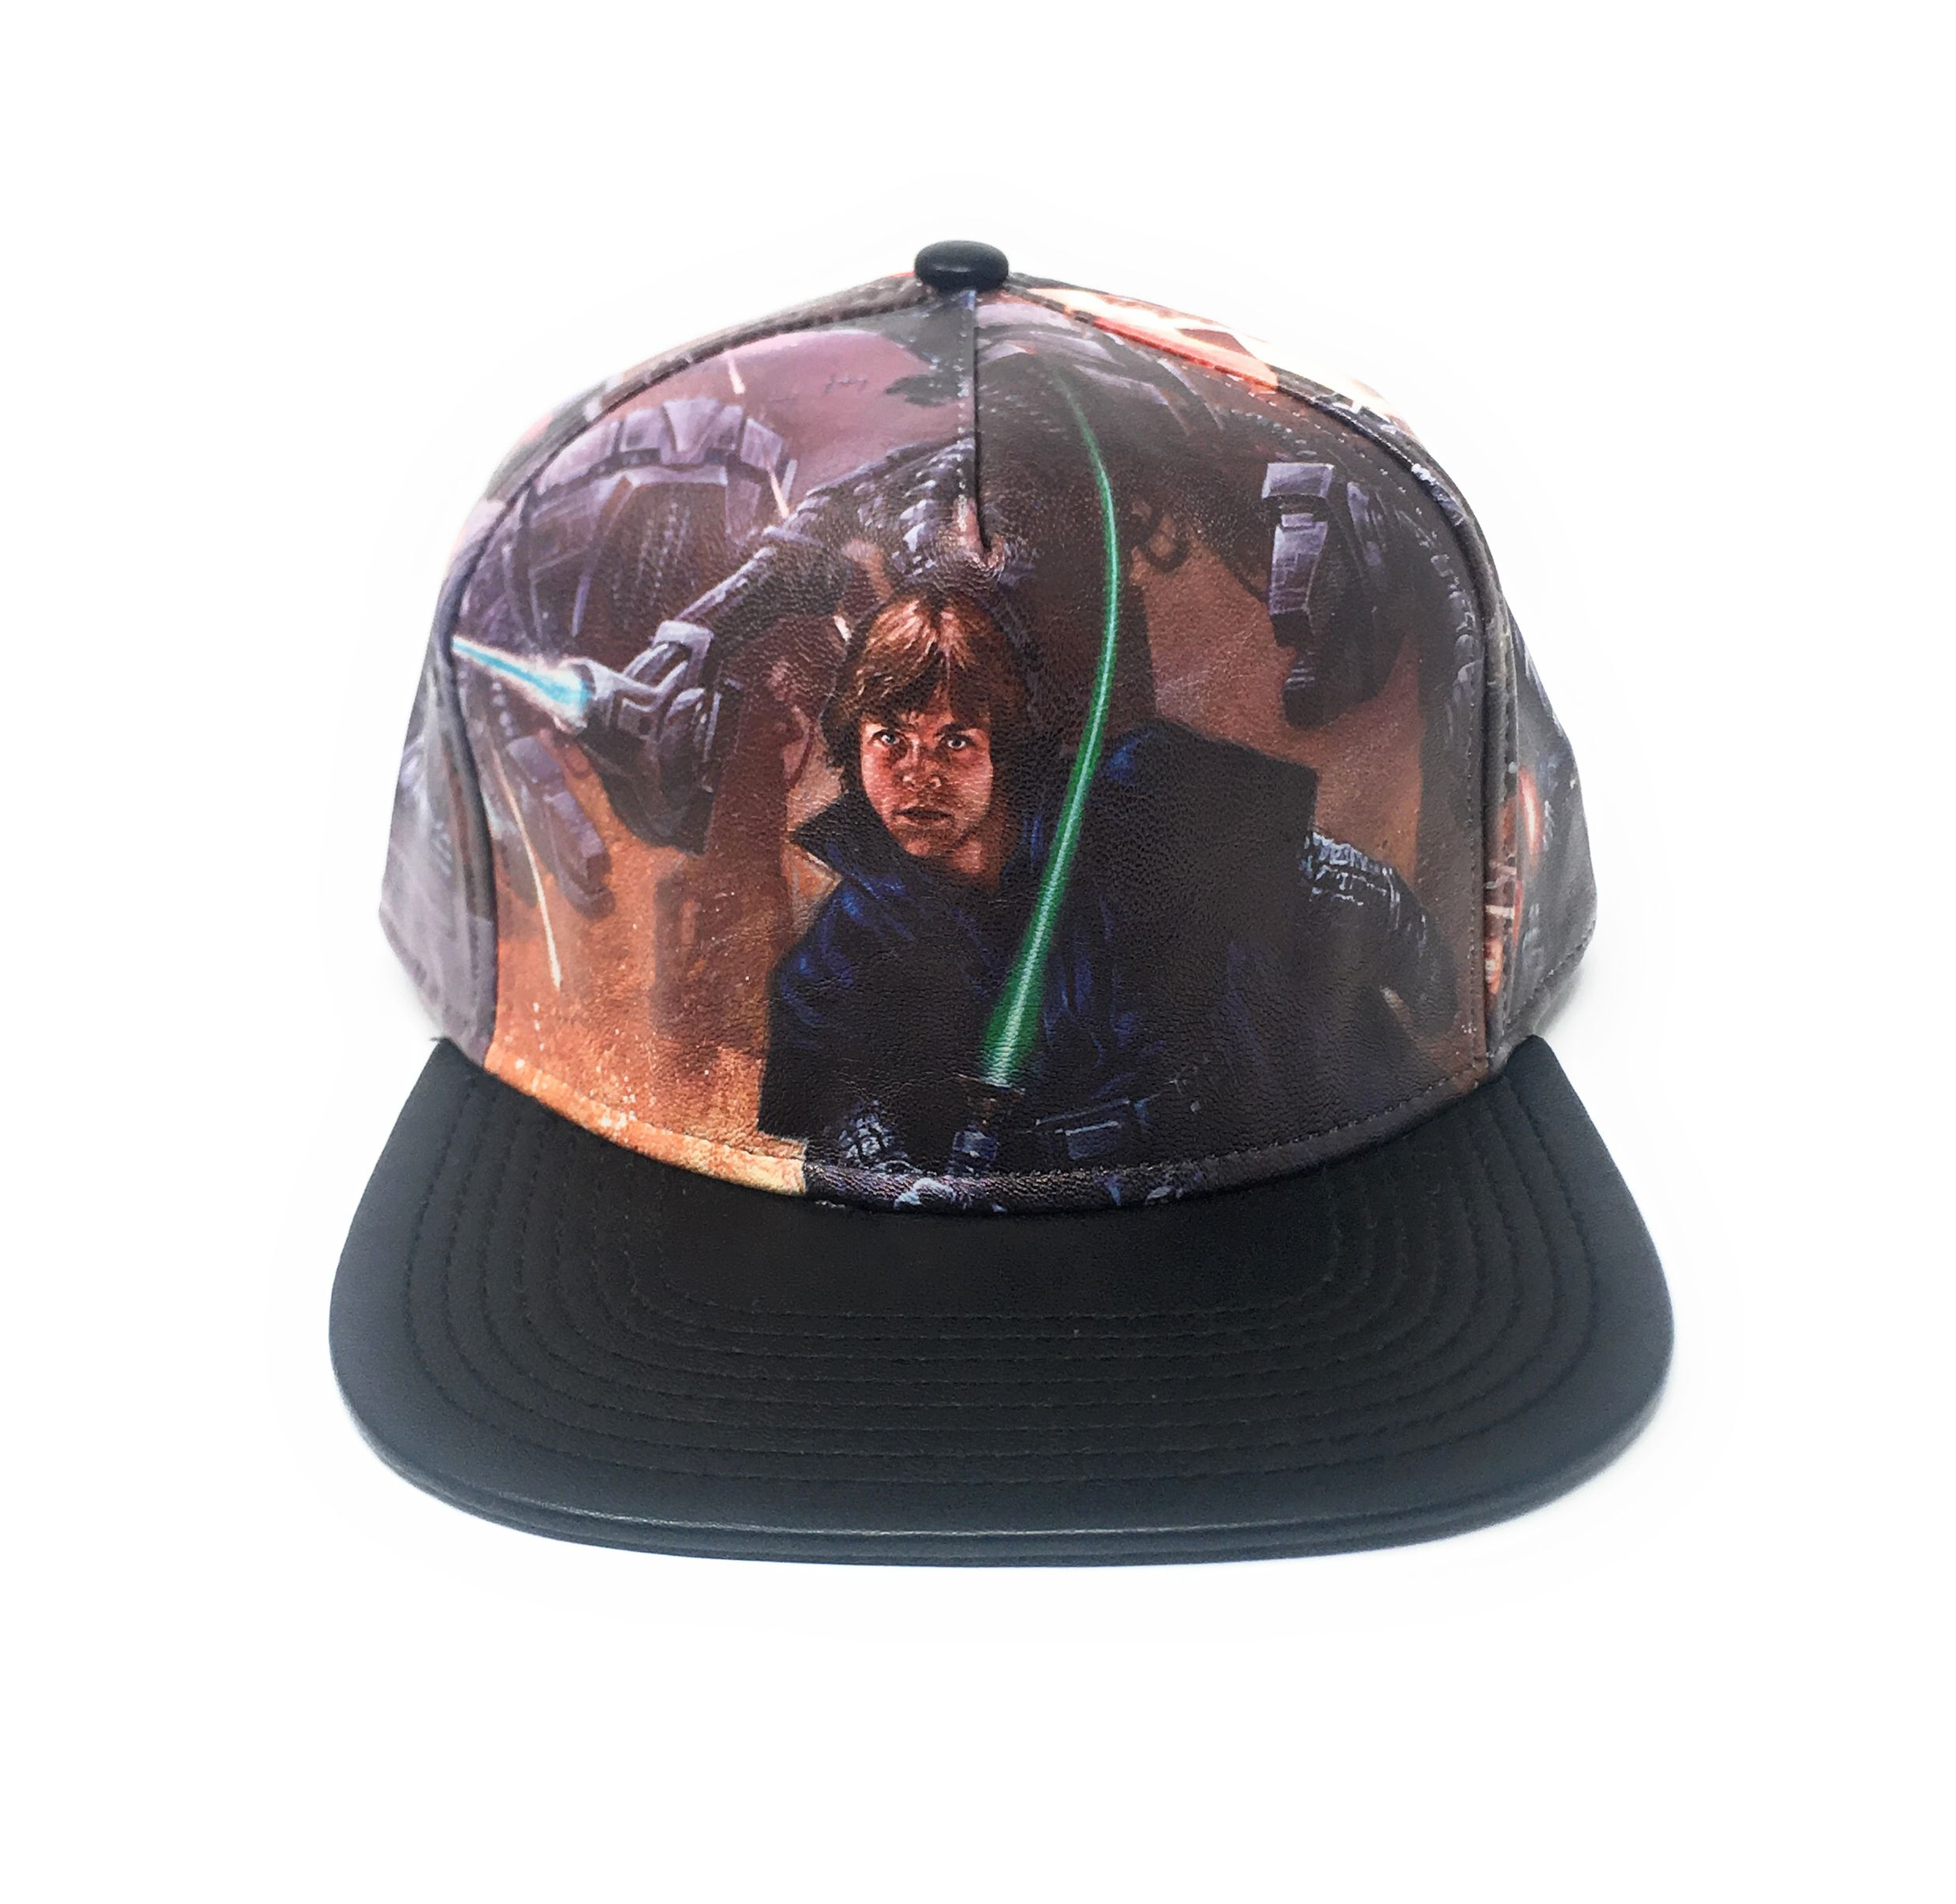 d941045806f31 Get this Bioworld Licensed Star Wars - Printed Scene PU Brim Snapback Hat!  Go get